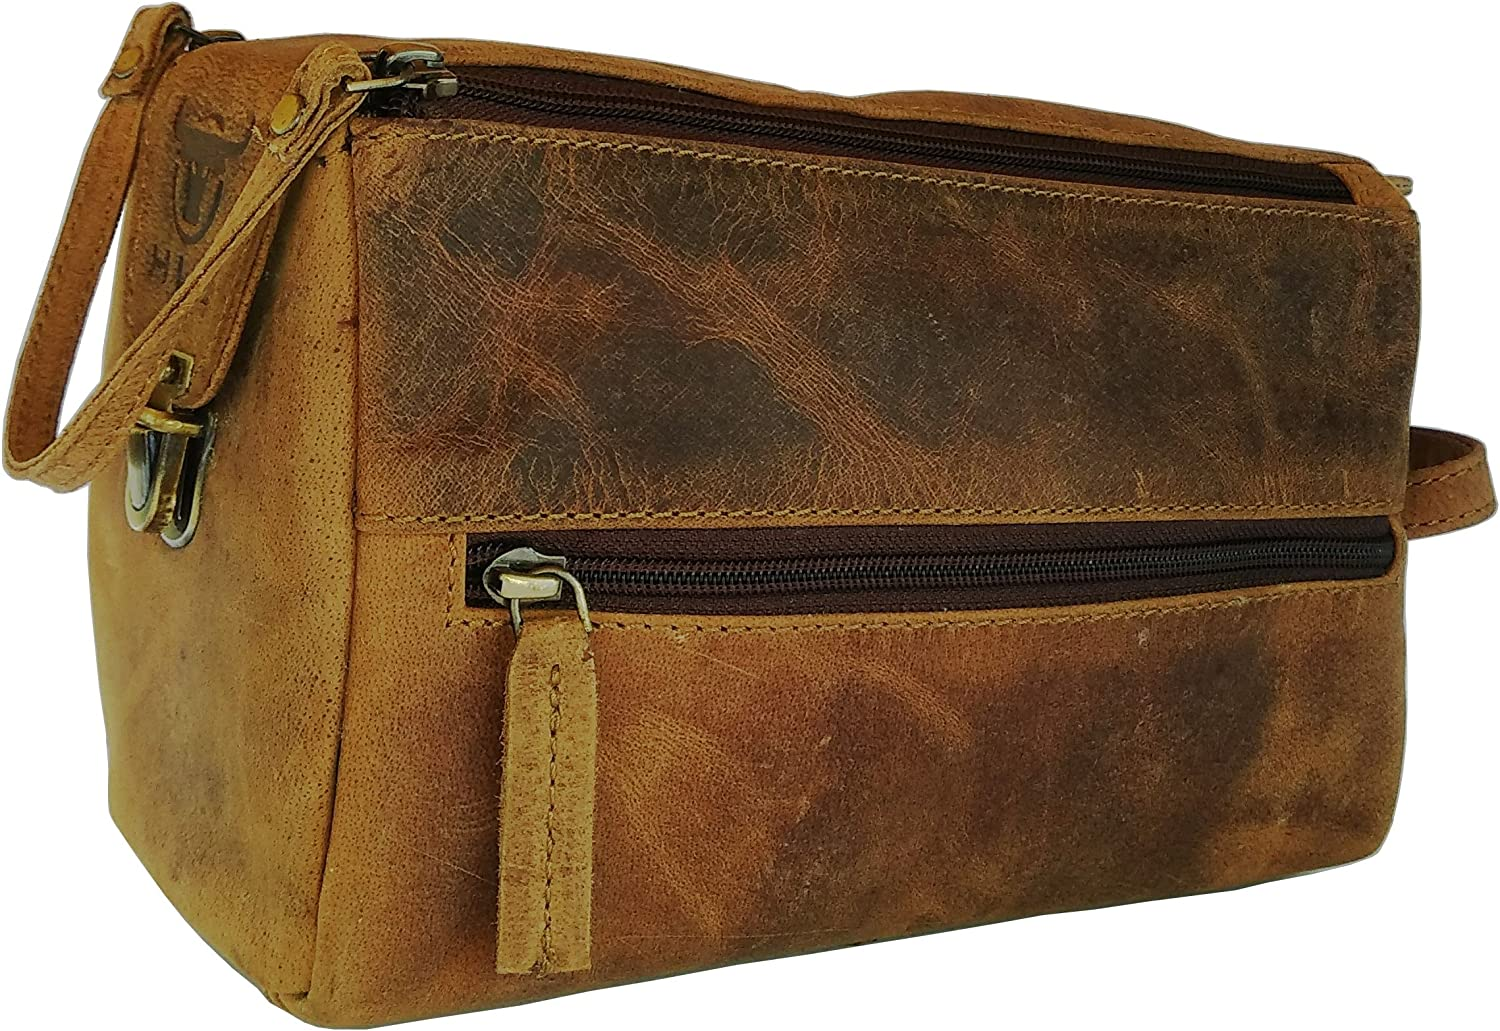 Genuine Buffalo Leather Unisex Toiletry Bag Travel Dopp Kit By Vintage Couture BROWN BUCKLE